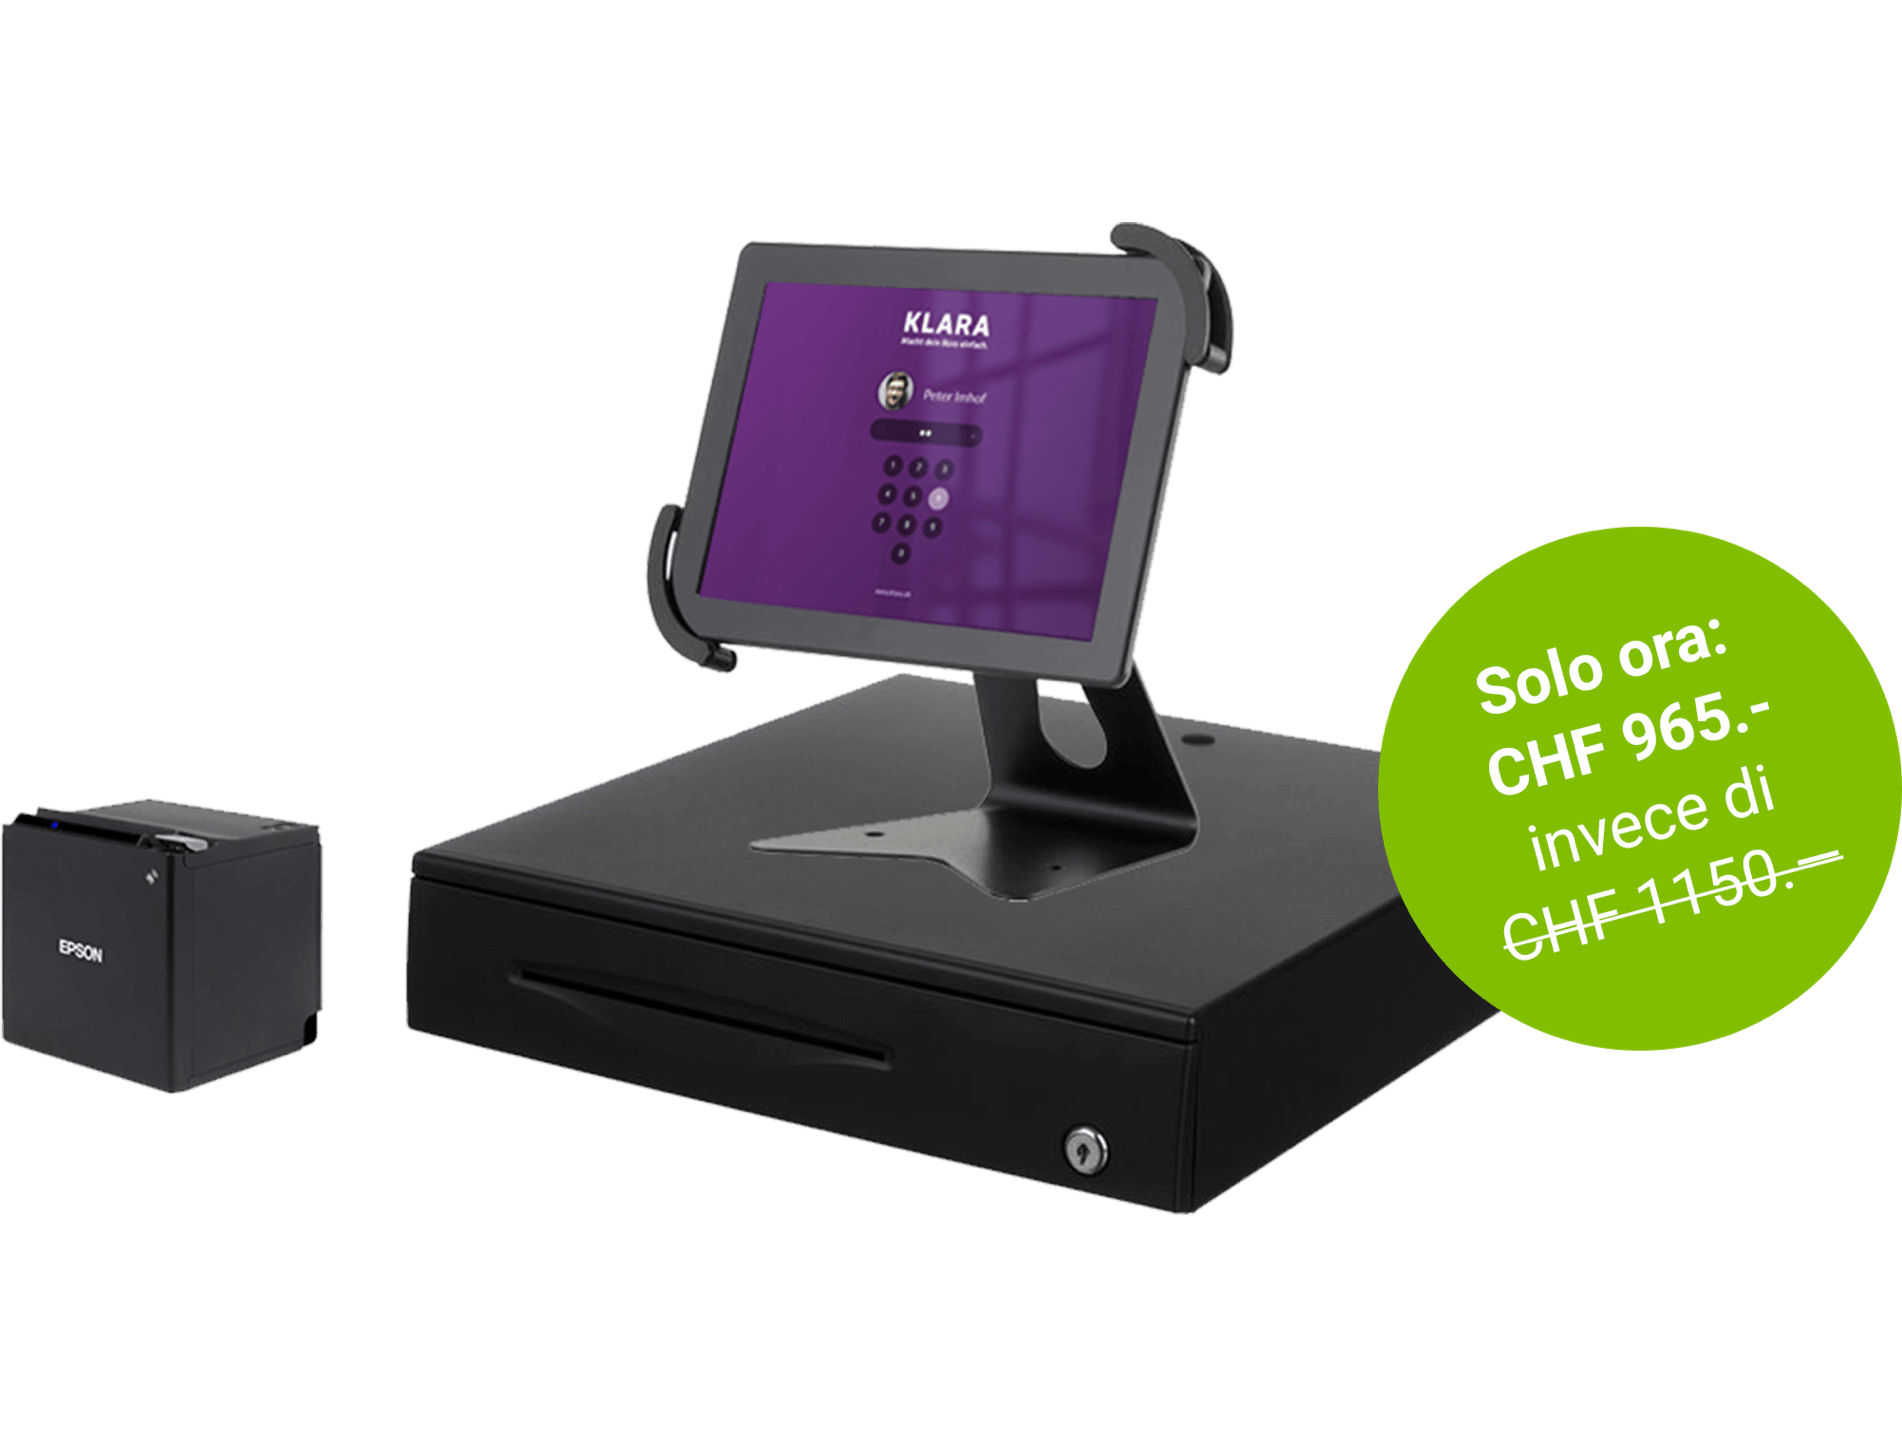 klara-website-large-pos-hardware-it